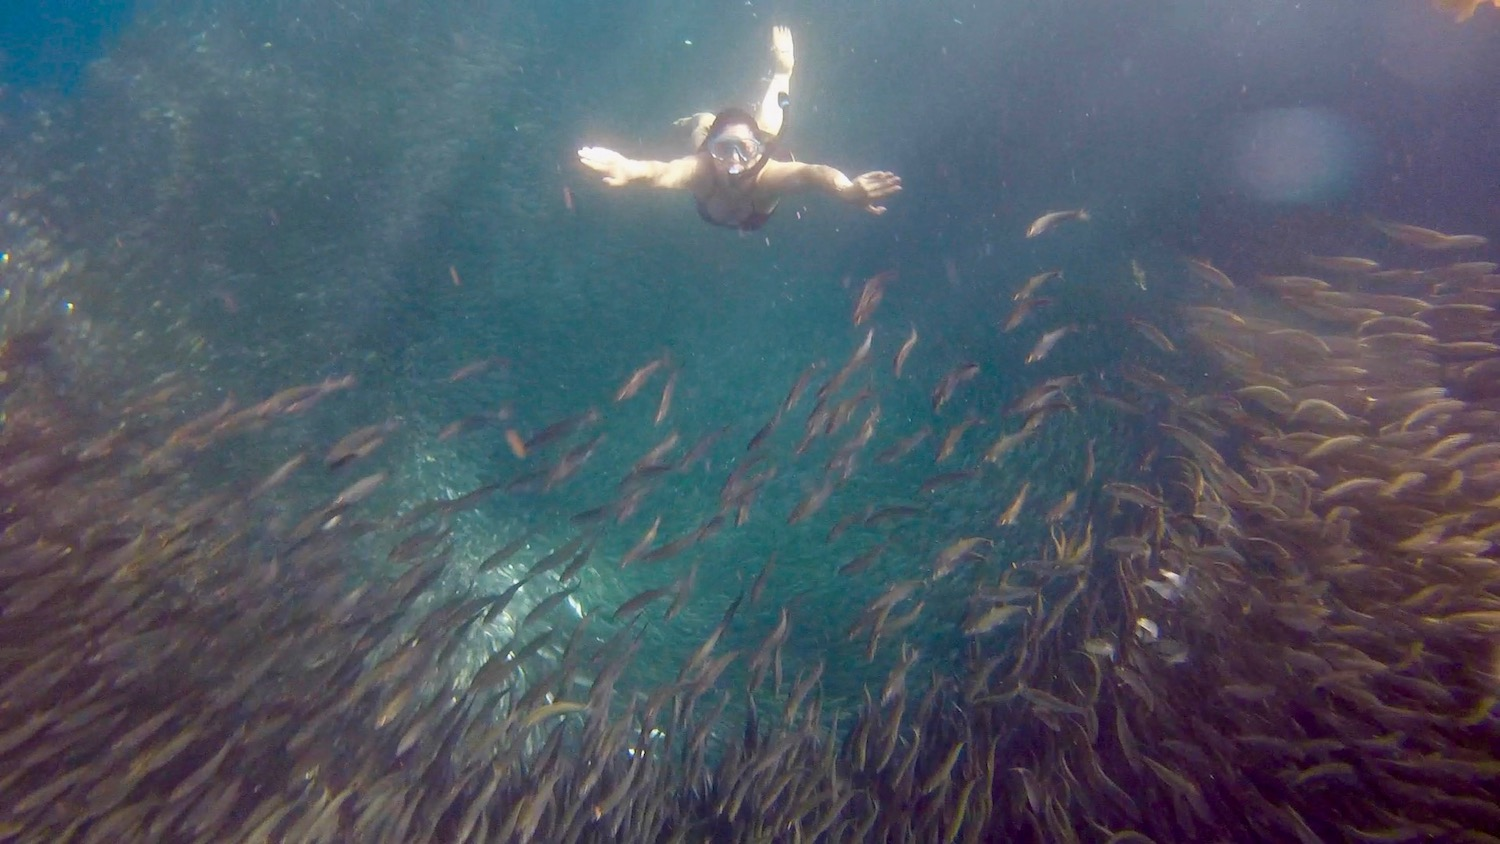 Woman dives into one of the worlds largest sardine runs (massive school of sardines) off of the coast of Cebu, Philippines. boldlygotravel.com